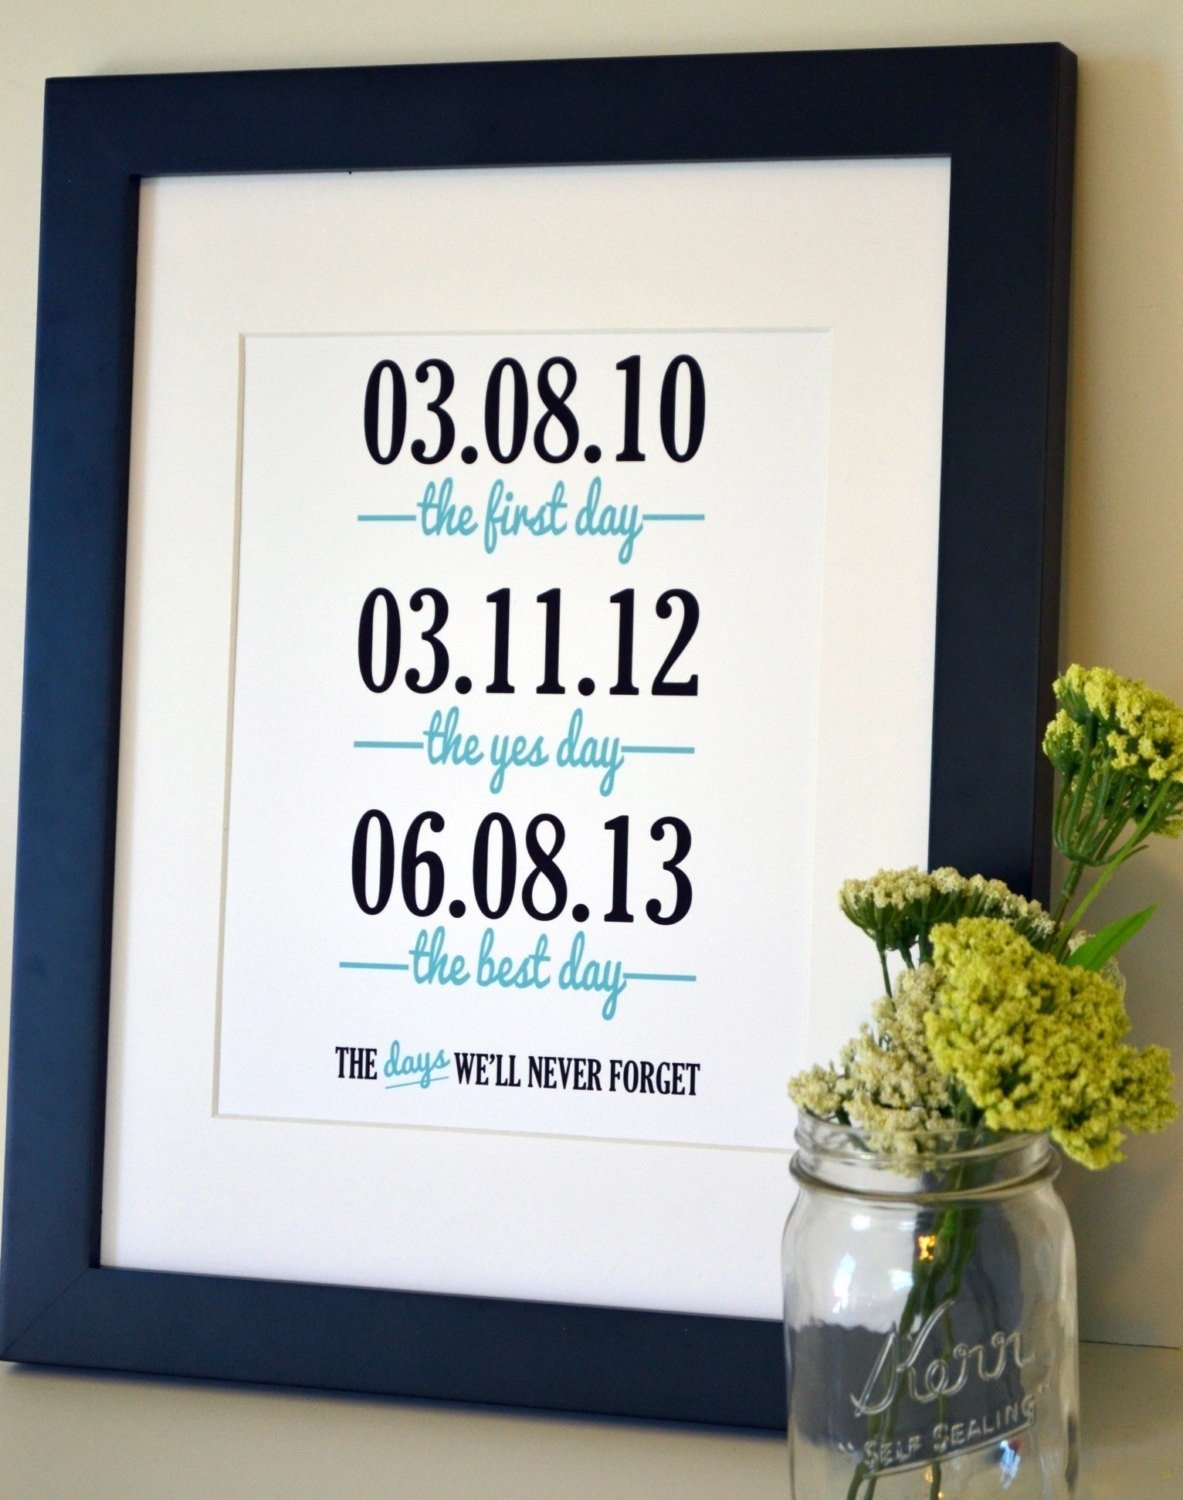 10 Amazing Gift Ideas For First Wedding Anniversary second wedding anniversary gift ideas for husband elegant perfect 4 2020